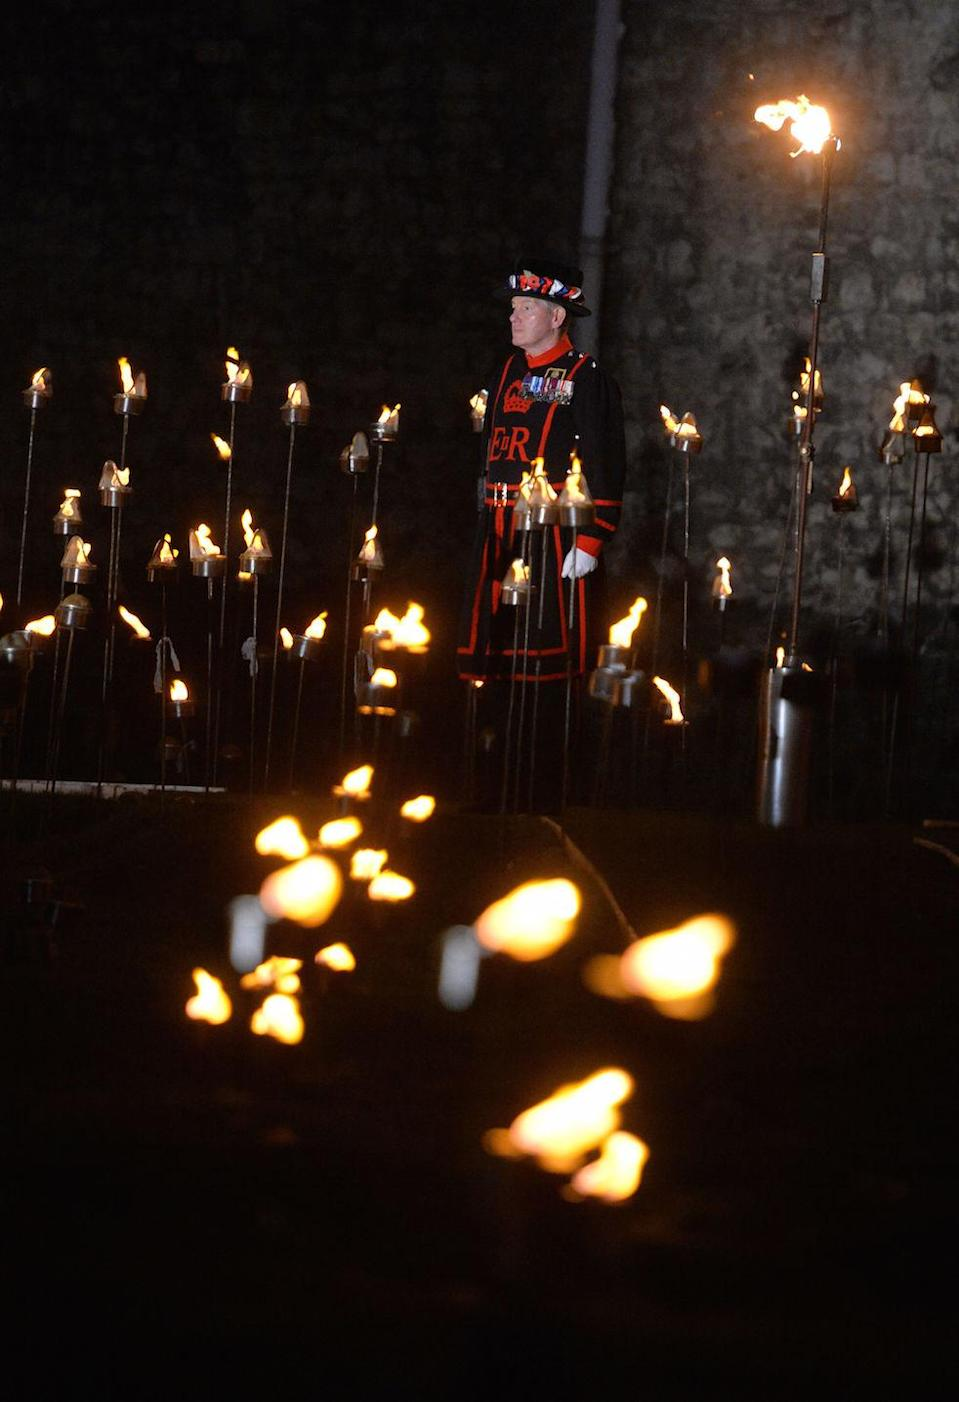 <p>Beefeaters ighting the first of thousands of flames in a lighting ceremony in the dry moat of the Tower of London as part of an installation called Beyond the Deepening Shadow: The Tower Remembers, to mark the centenary of the end of First World War. (Picture: PA) </p>